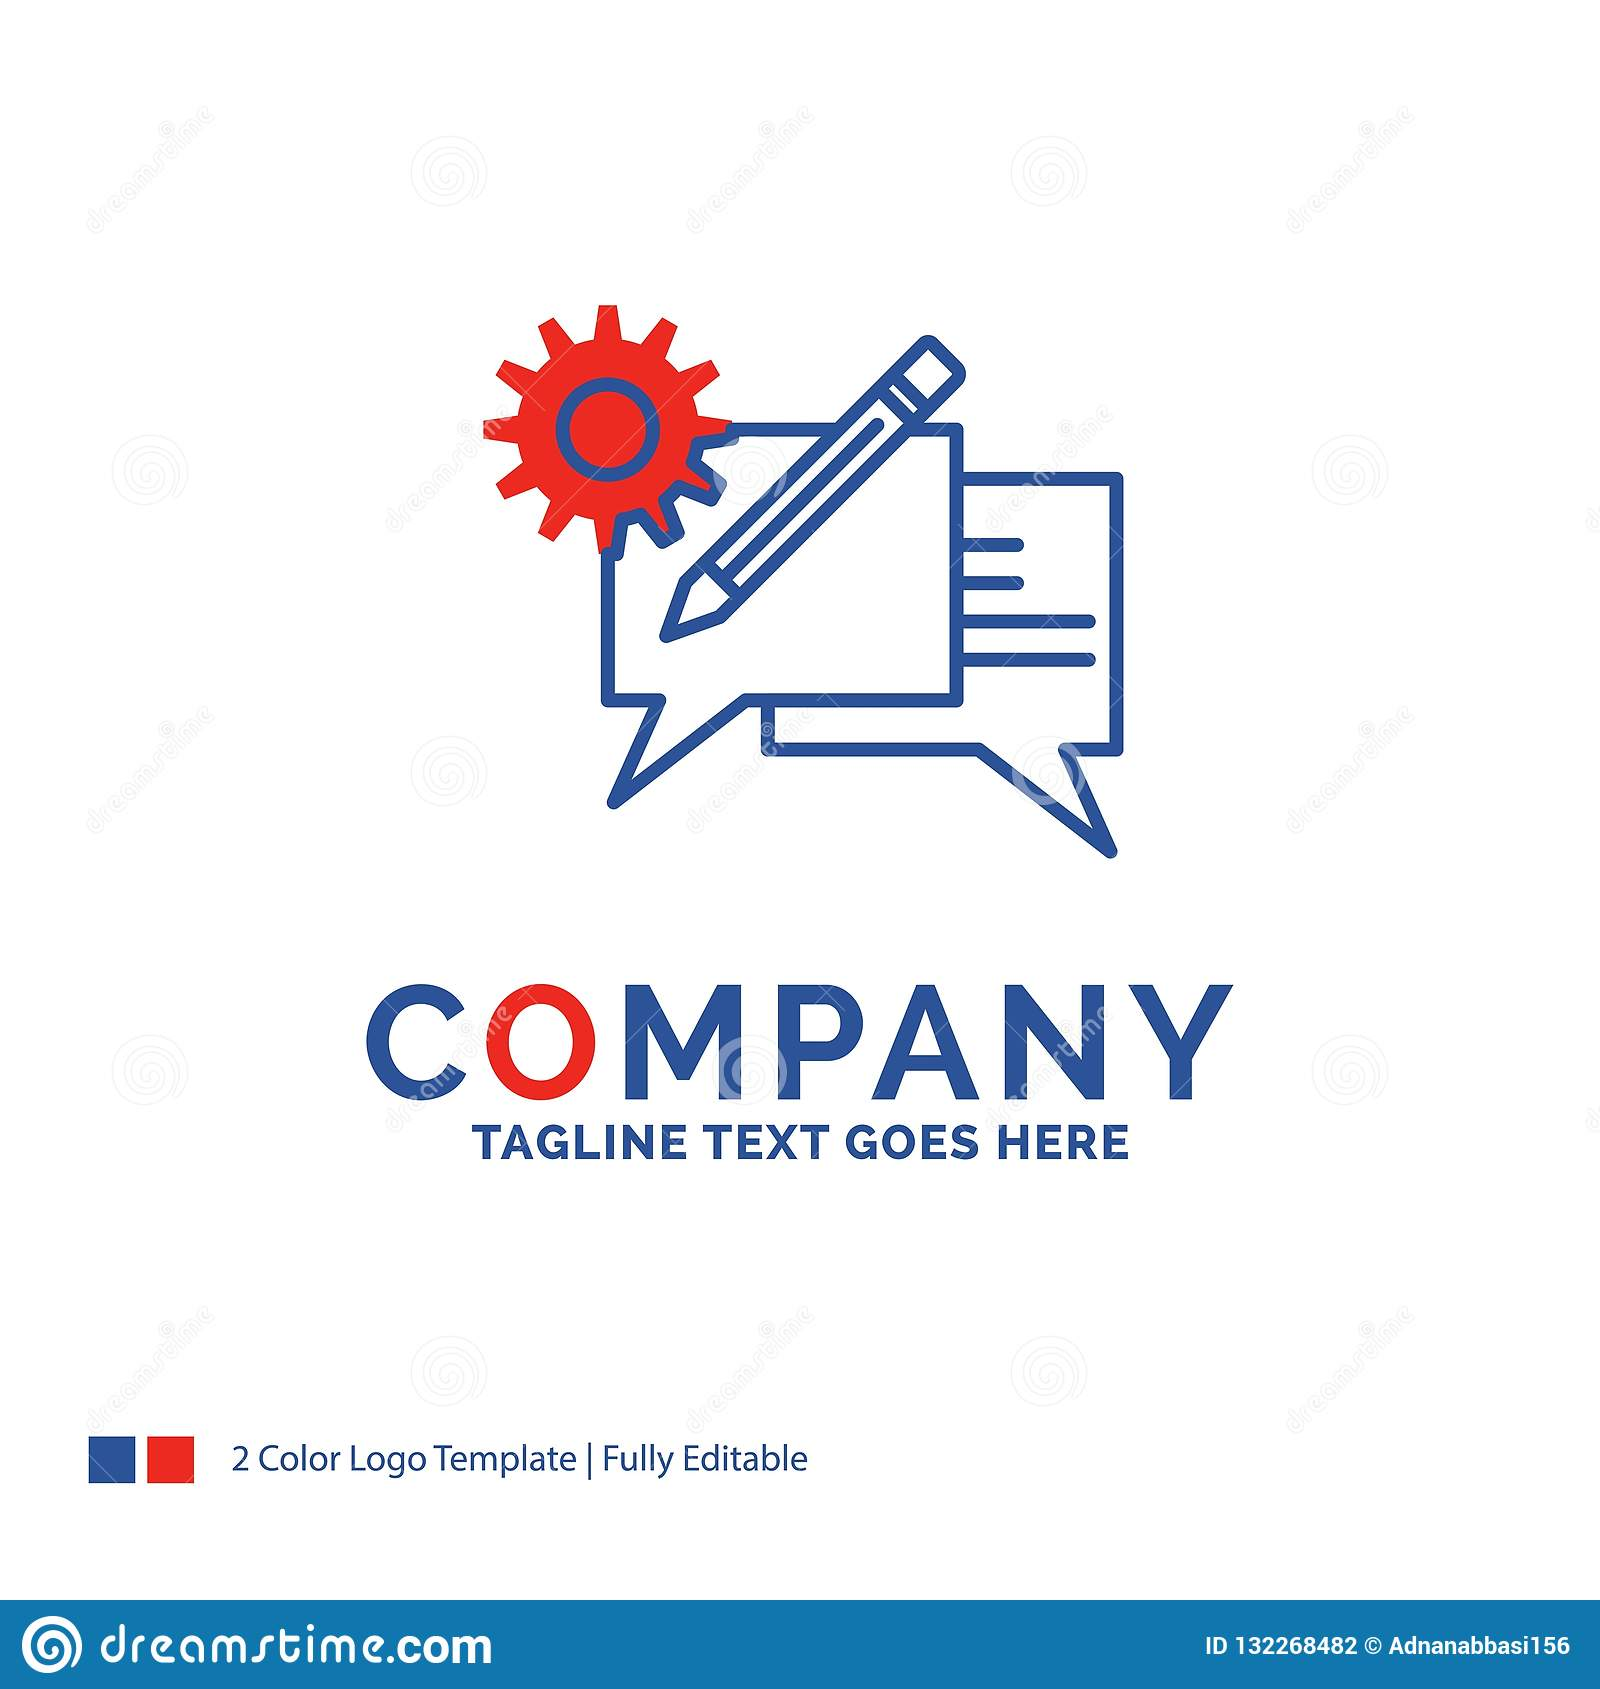 Company Name Logo Design For Chat, Communication